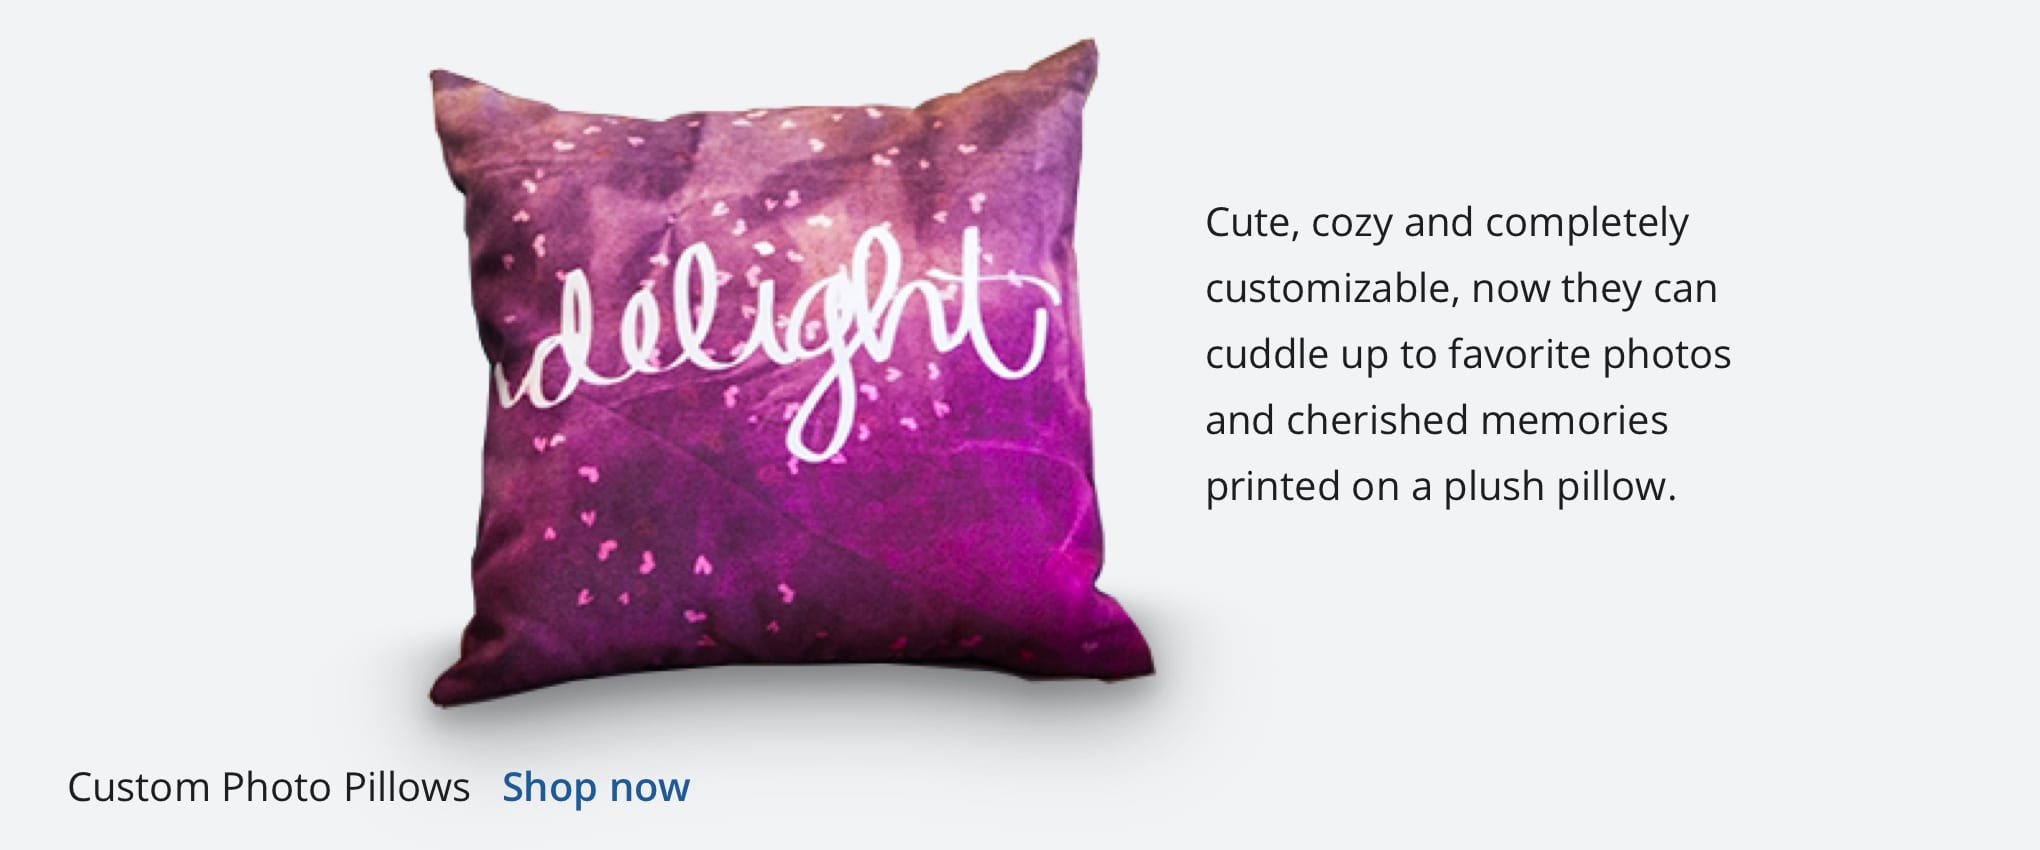 4120_www_gift-guides_2040x850_unique-gifts_photo-pillows